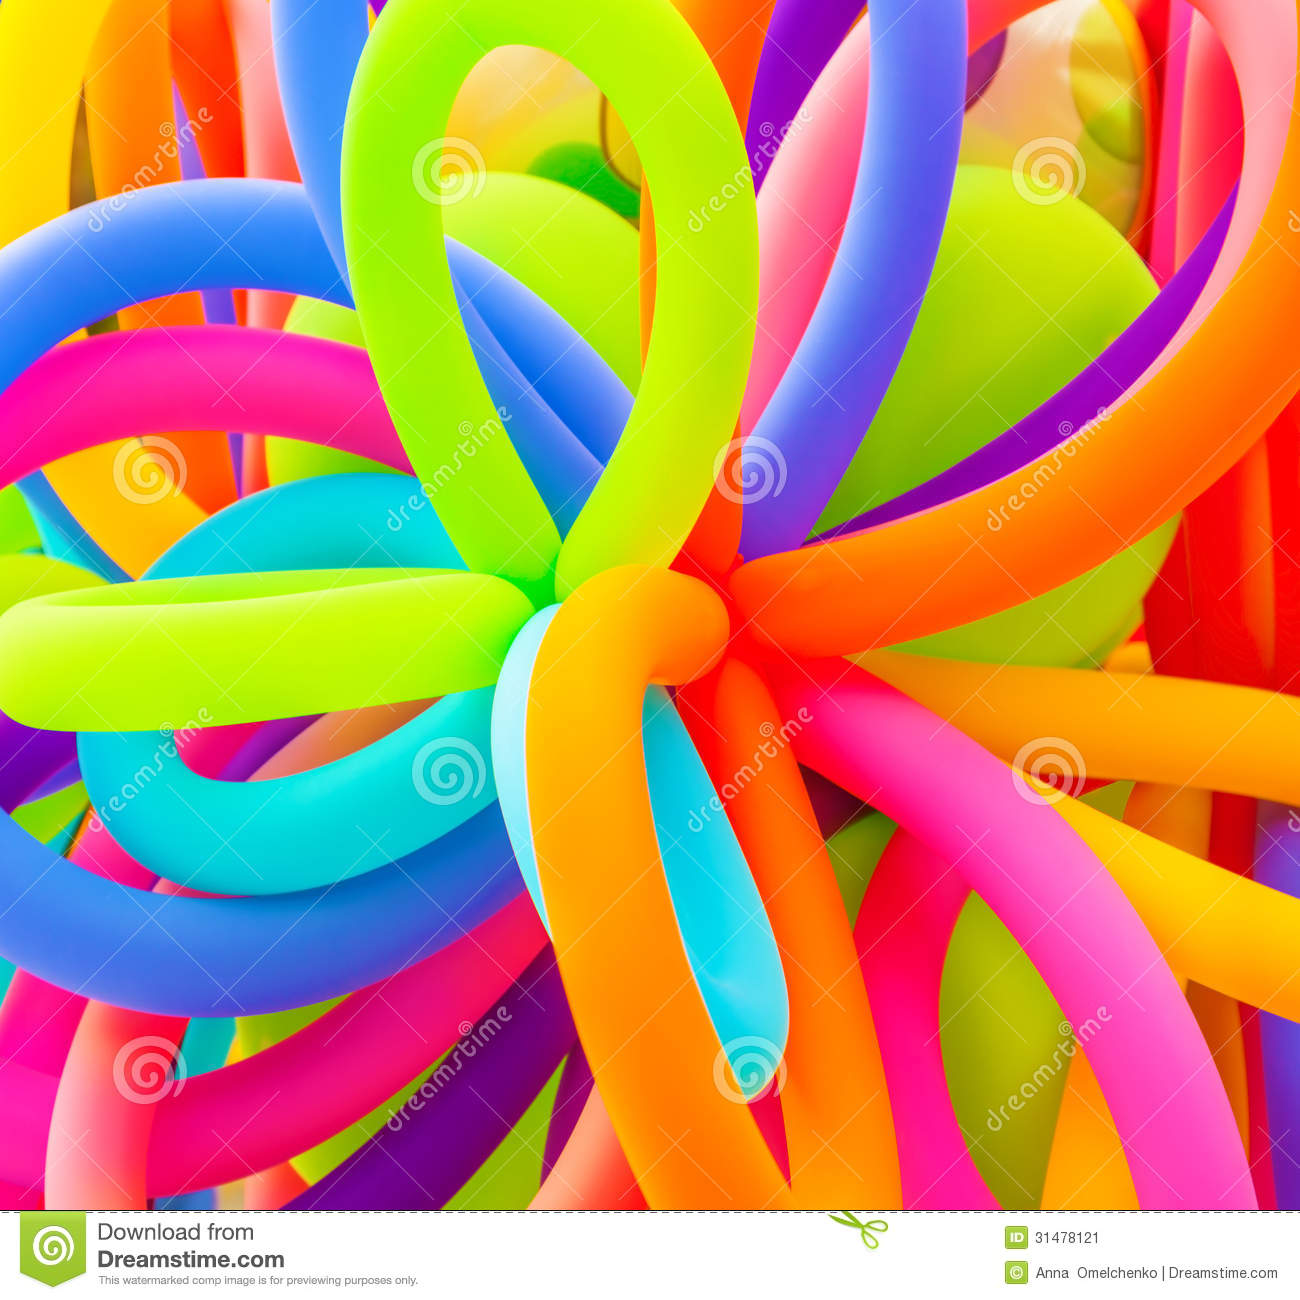 happy people colorful wallpaper-#3